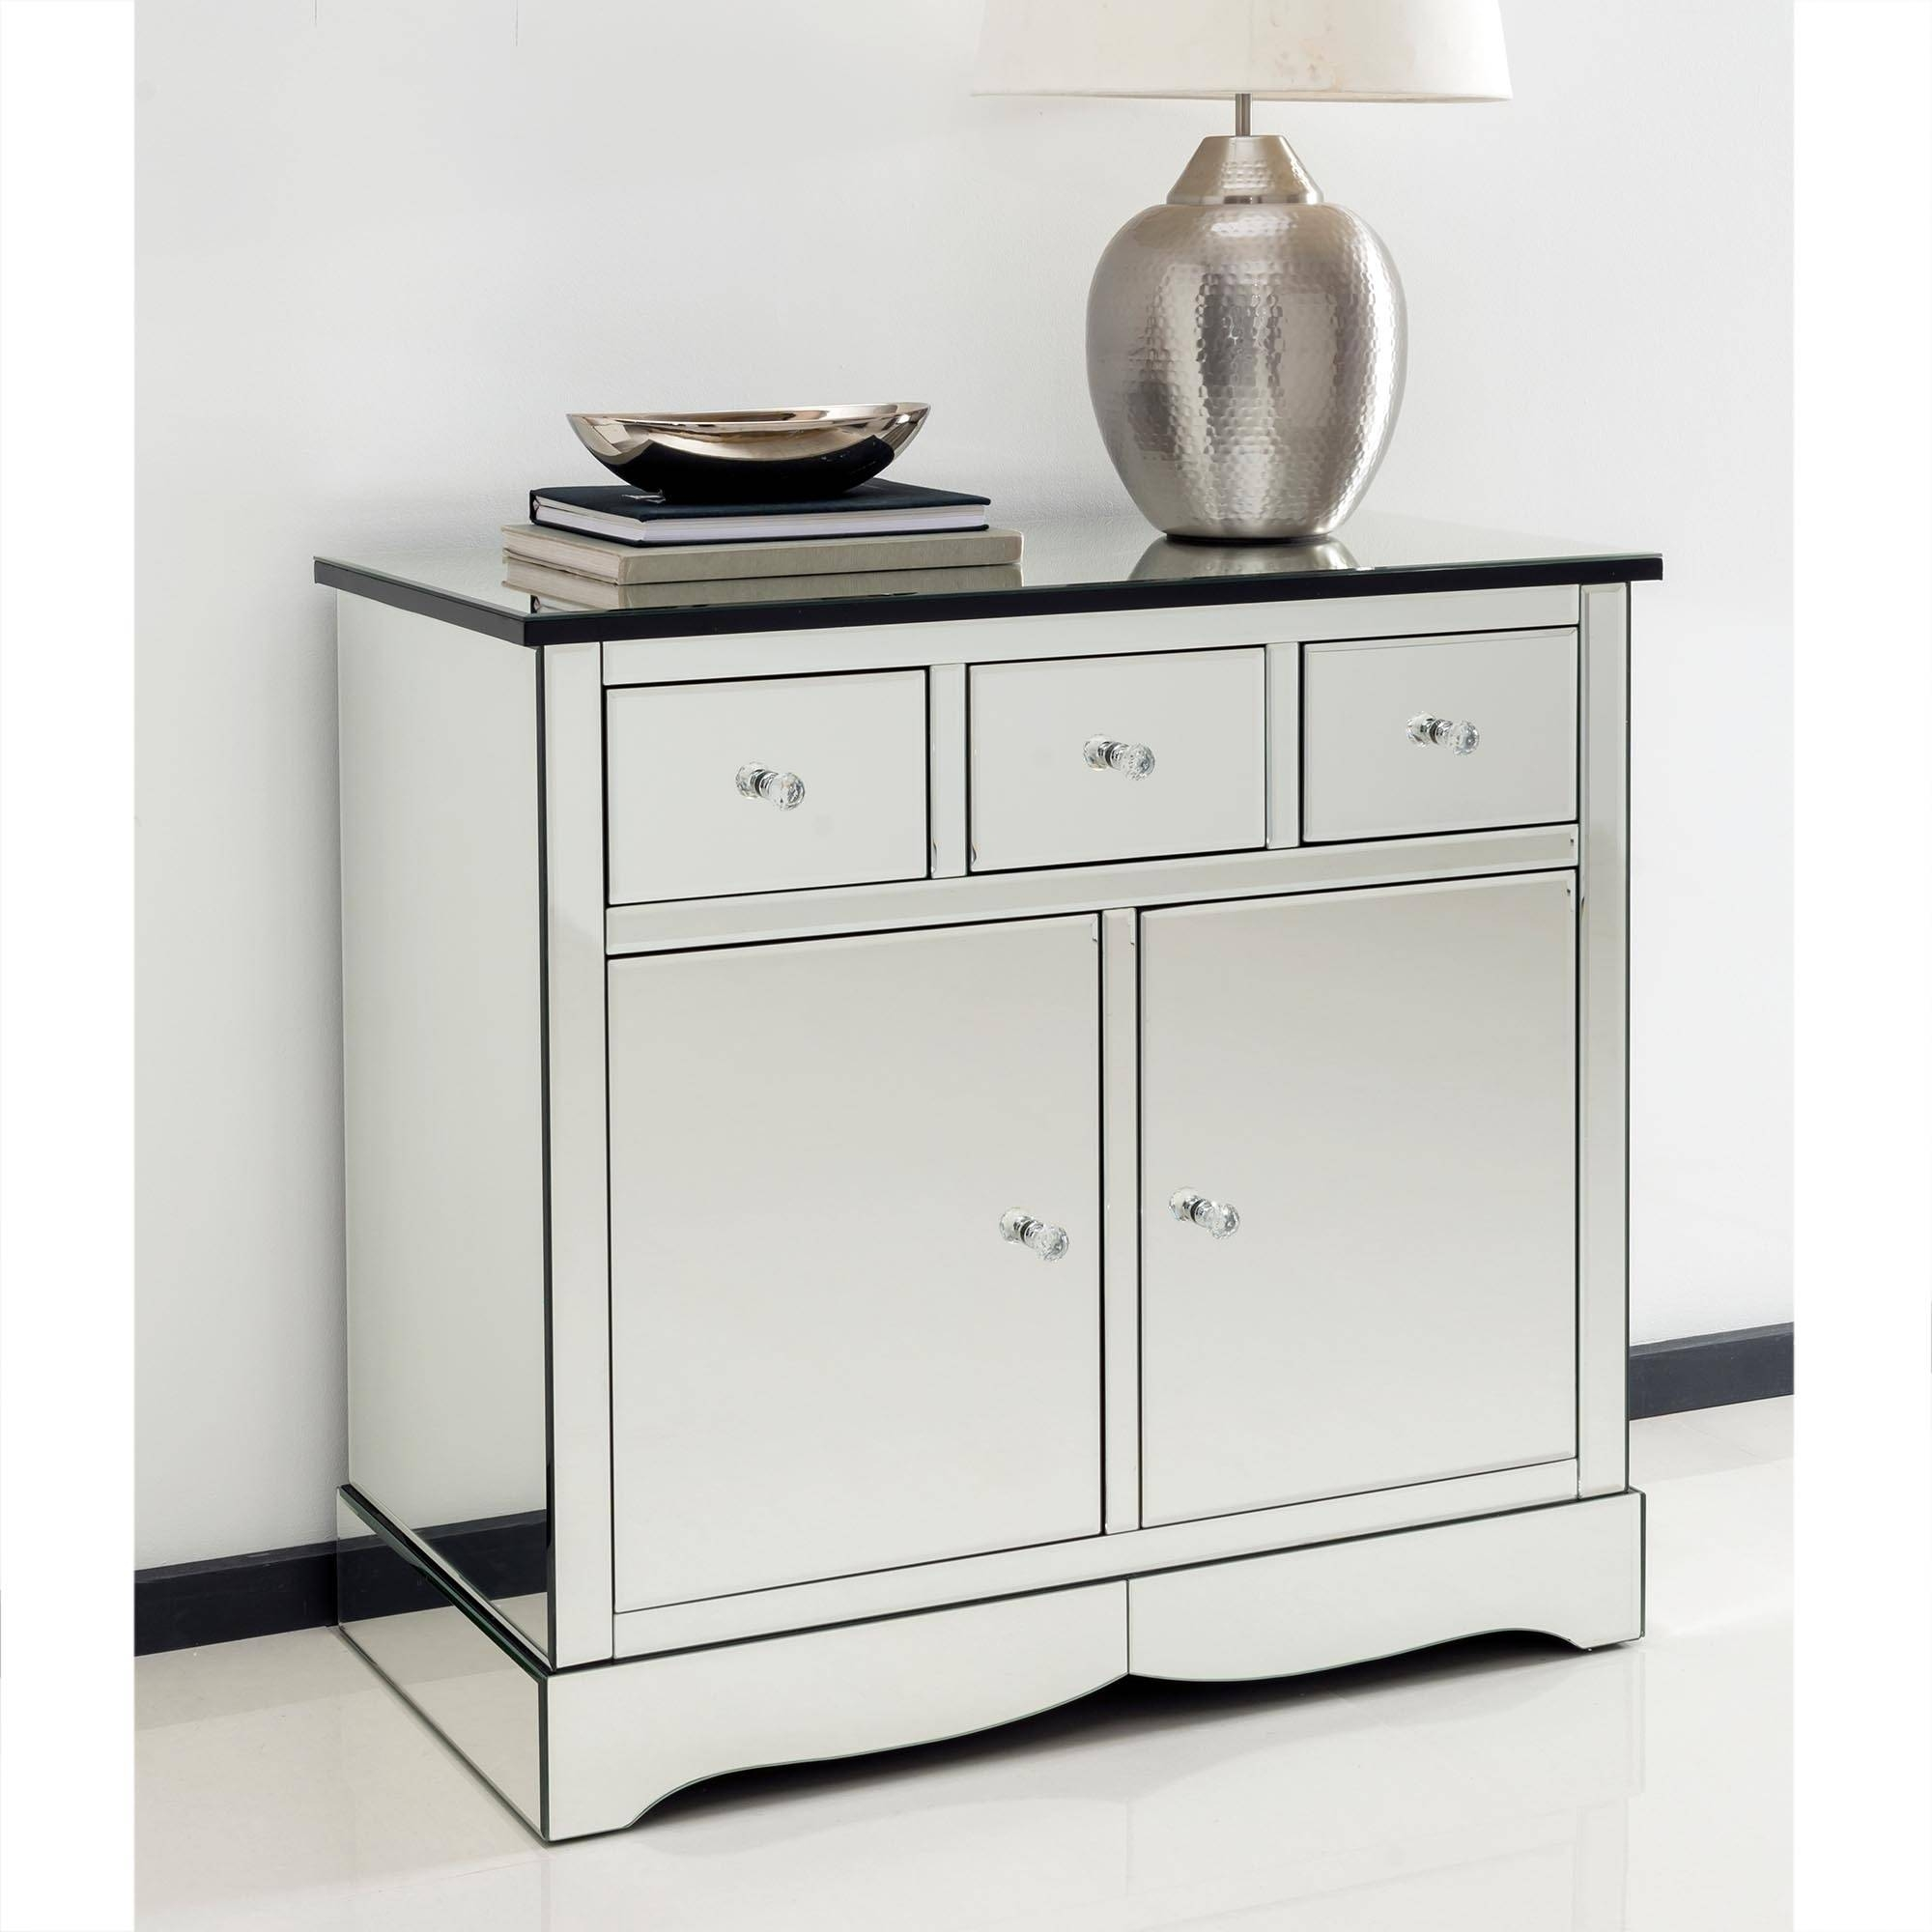 Romano Crystal Mirrored Cabinet With Cupboards & Drawers - French throughout Mirrored Sideboards (Image 20 of 30)